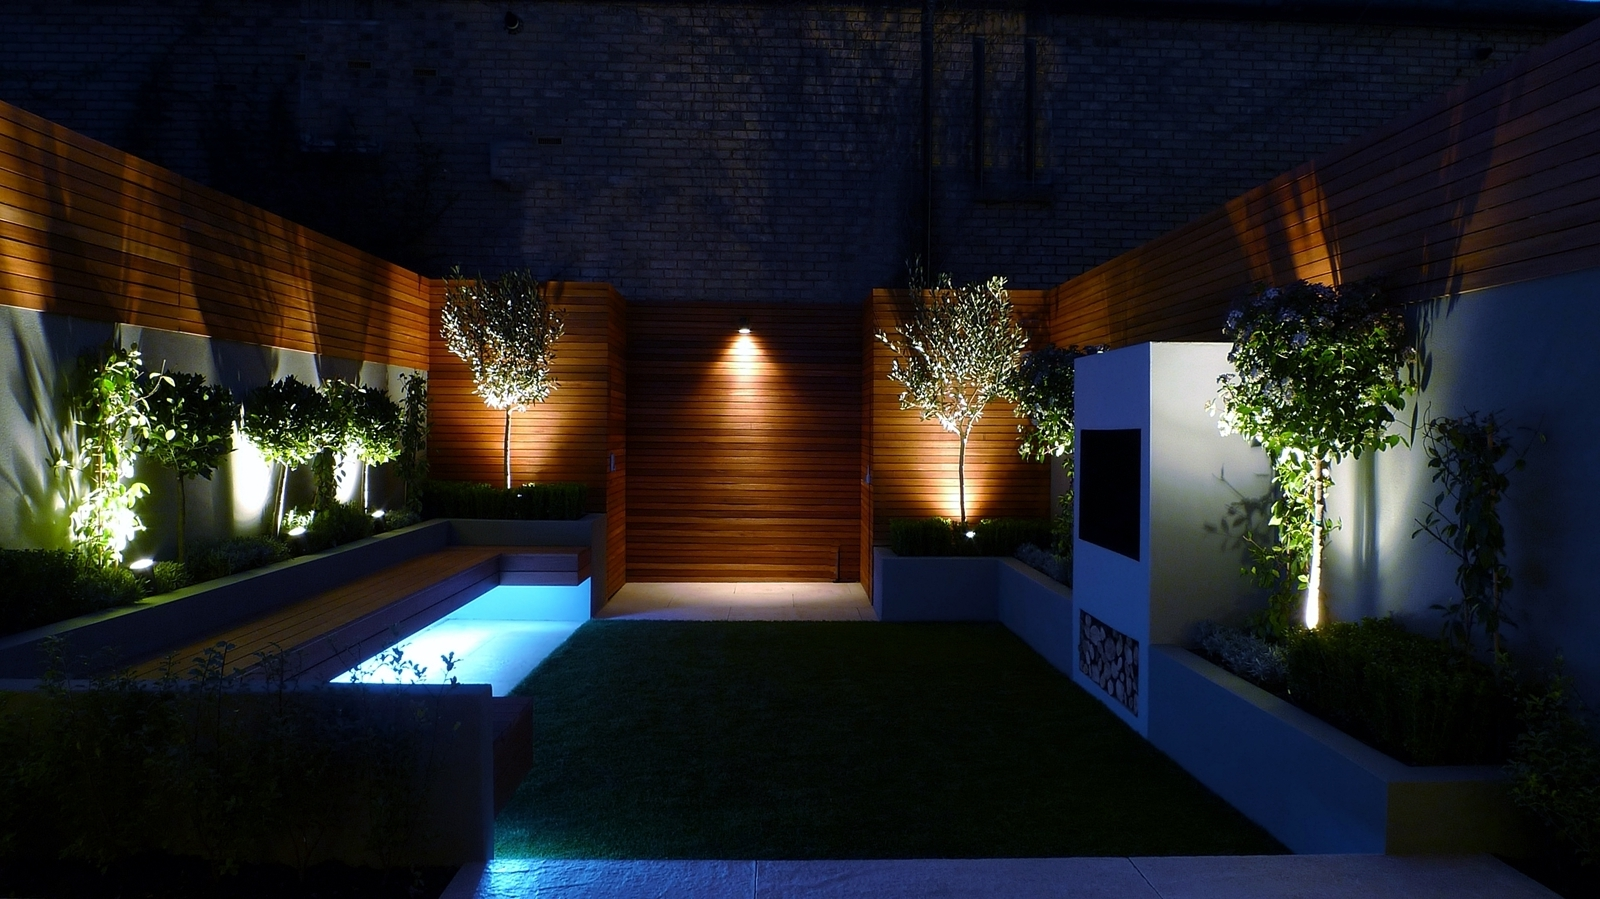 38 Innovative Outdoor Lighting Ideas For Your Garden With Best And Newest Contemporary Led Post Lights For Mini Garden (View 3 of 20)